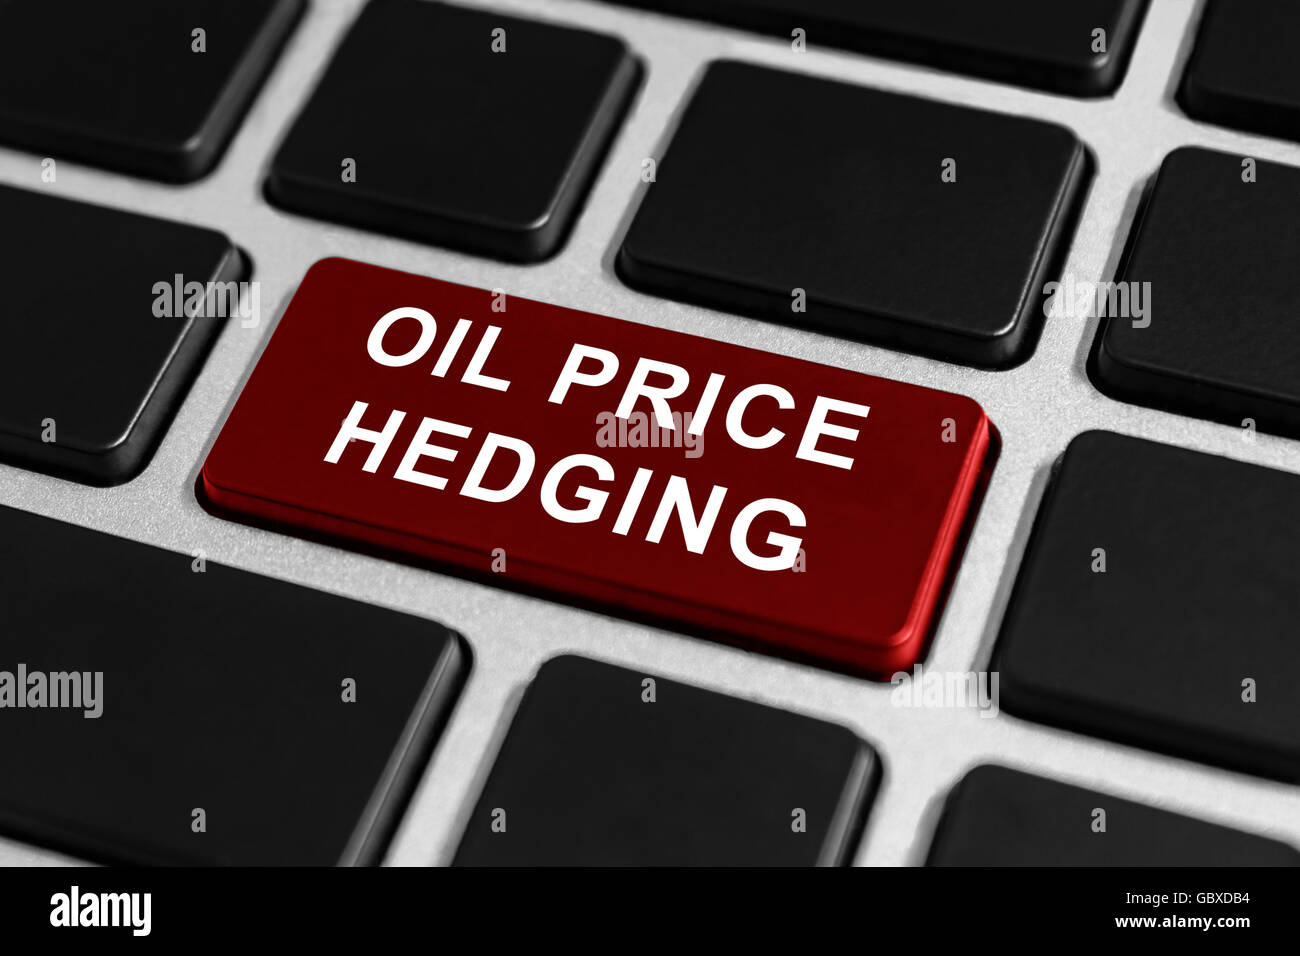 oil price hedging button on keyboard, business concept - Stock Image